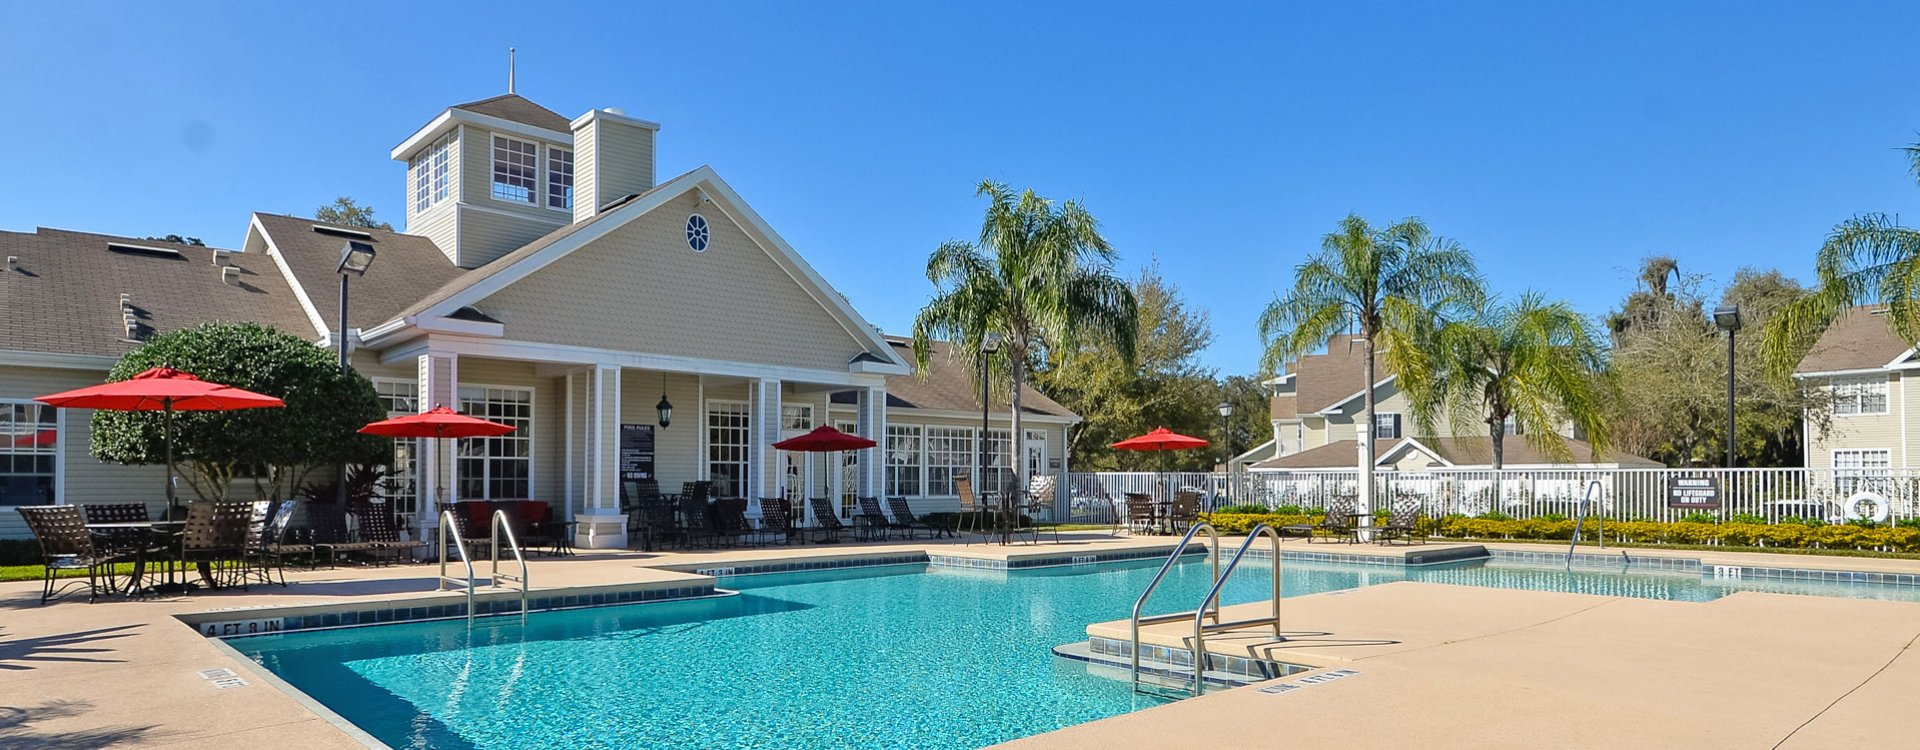 Apartments In Plant City FL